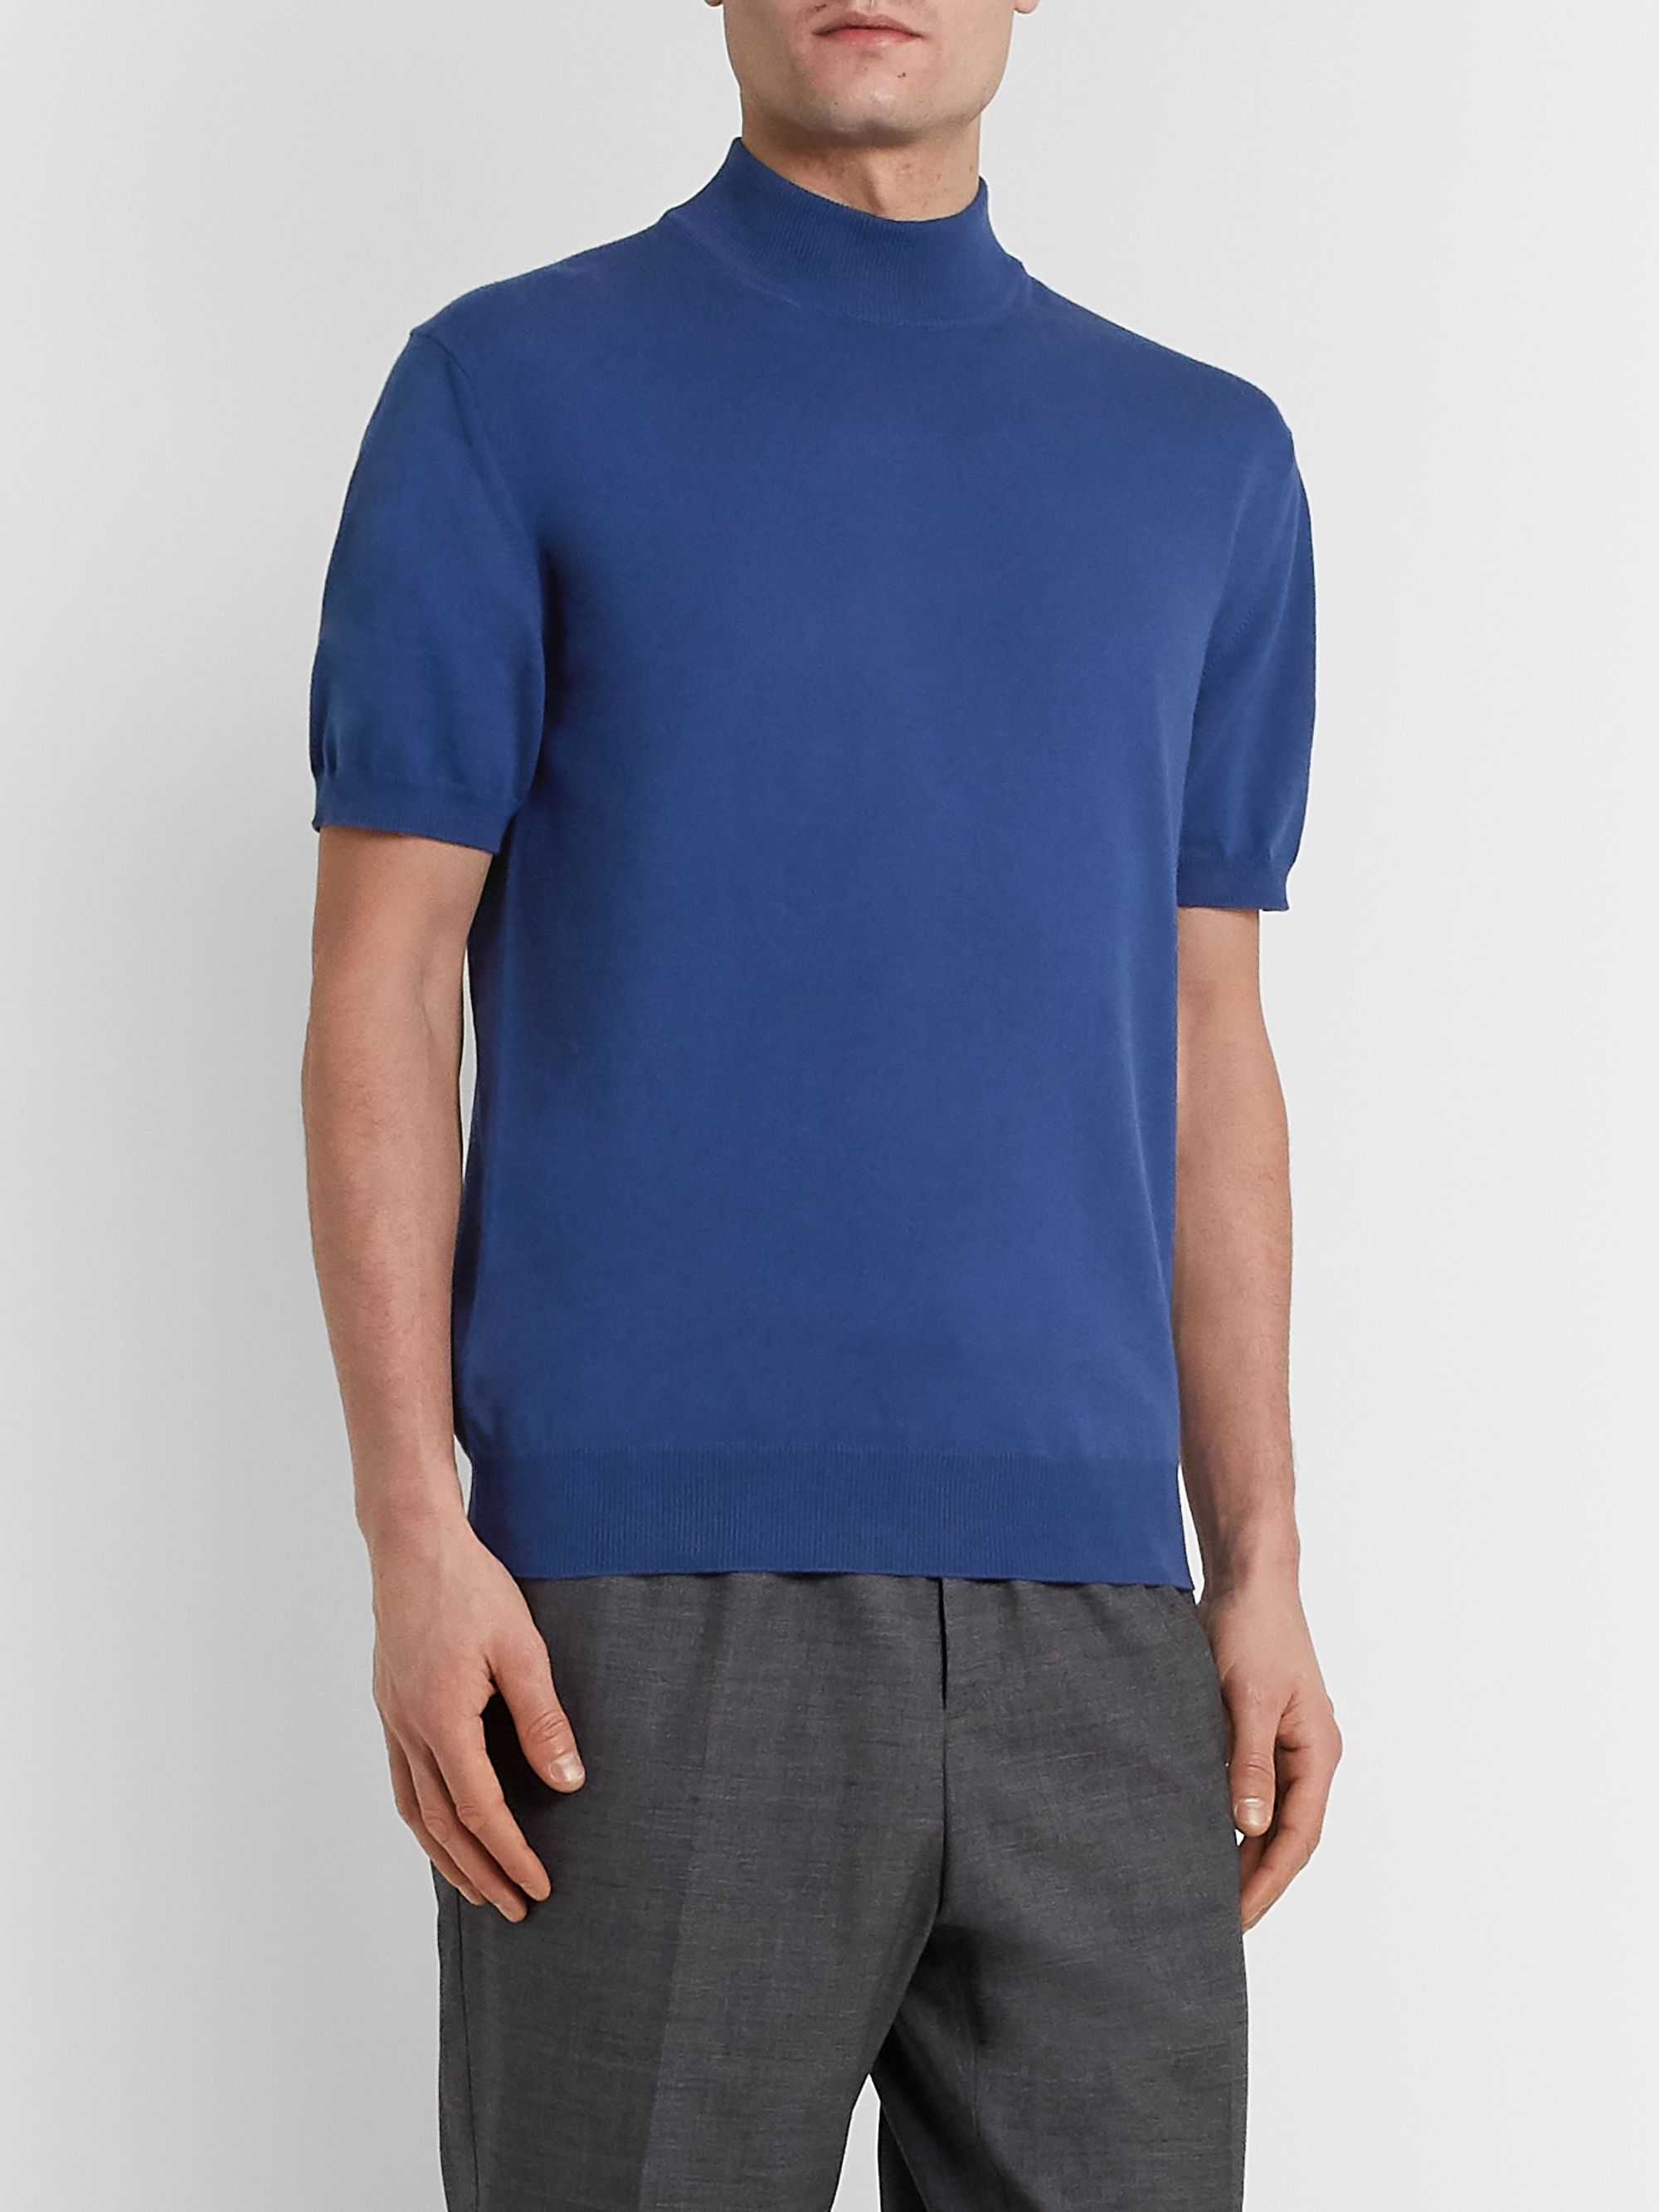 Mr P. Cotton Mock-Neck Sweater